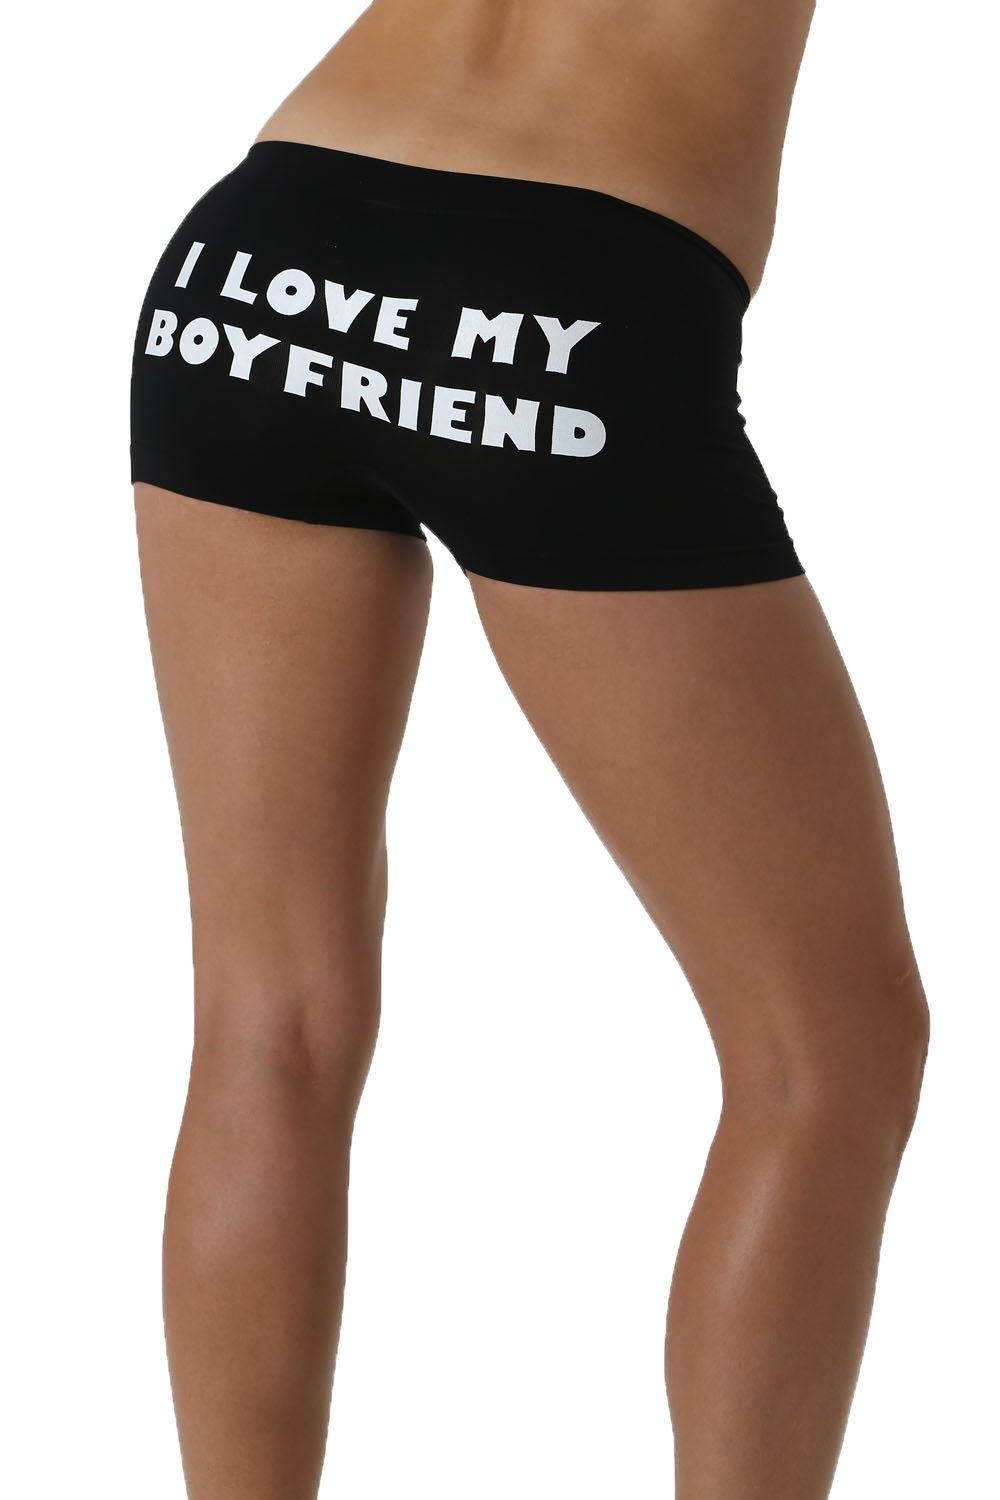 Make Me Laugh Women's I Love My Boyfriend Boy Shorts One Size Fits All (Small - XL) Black